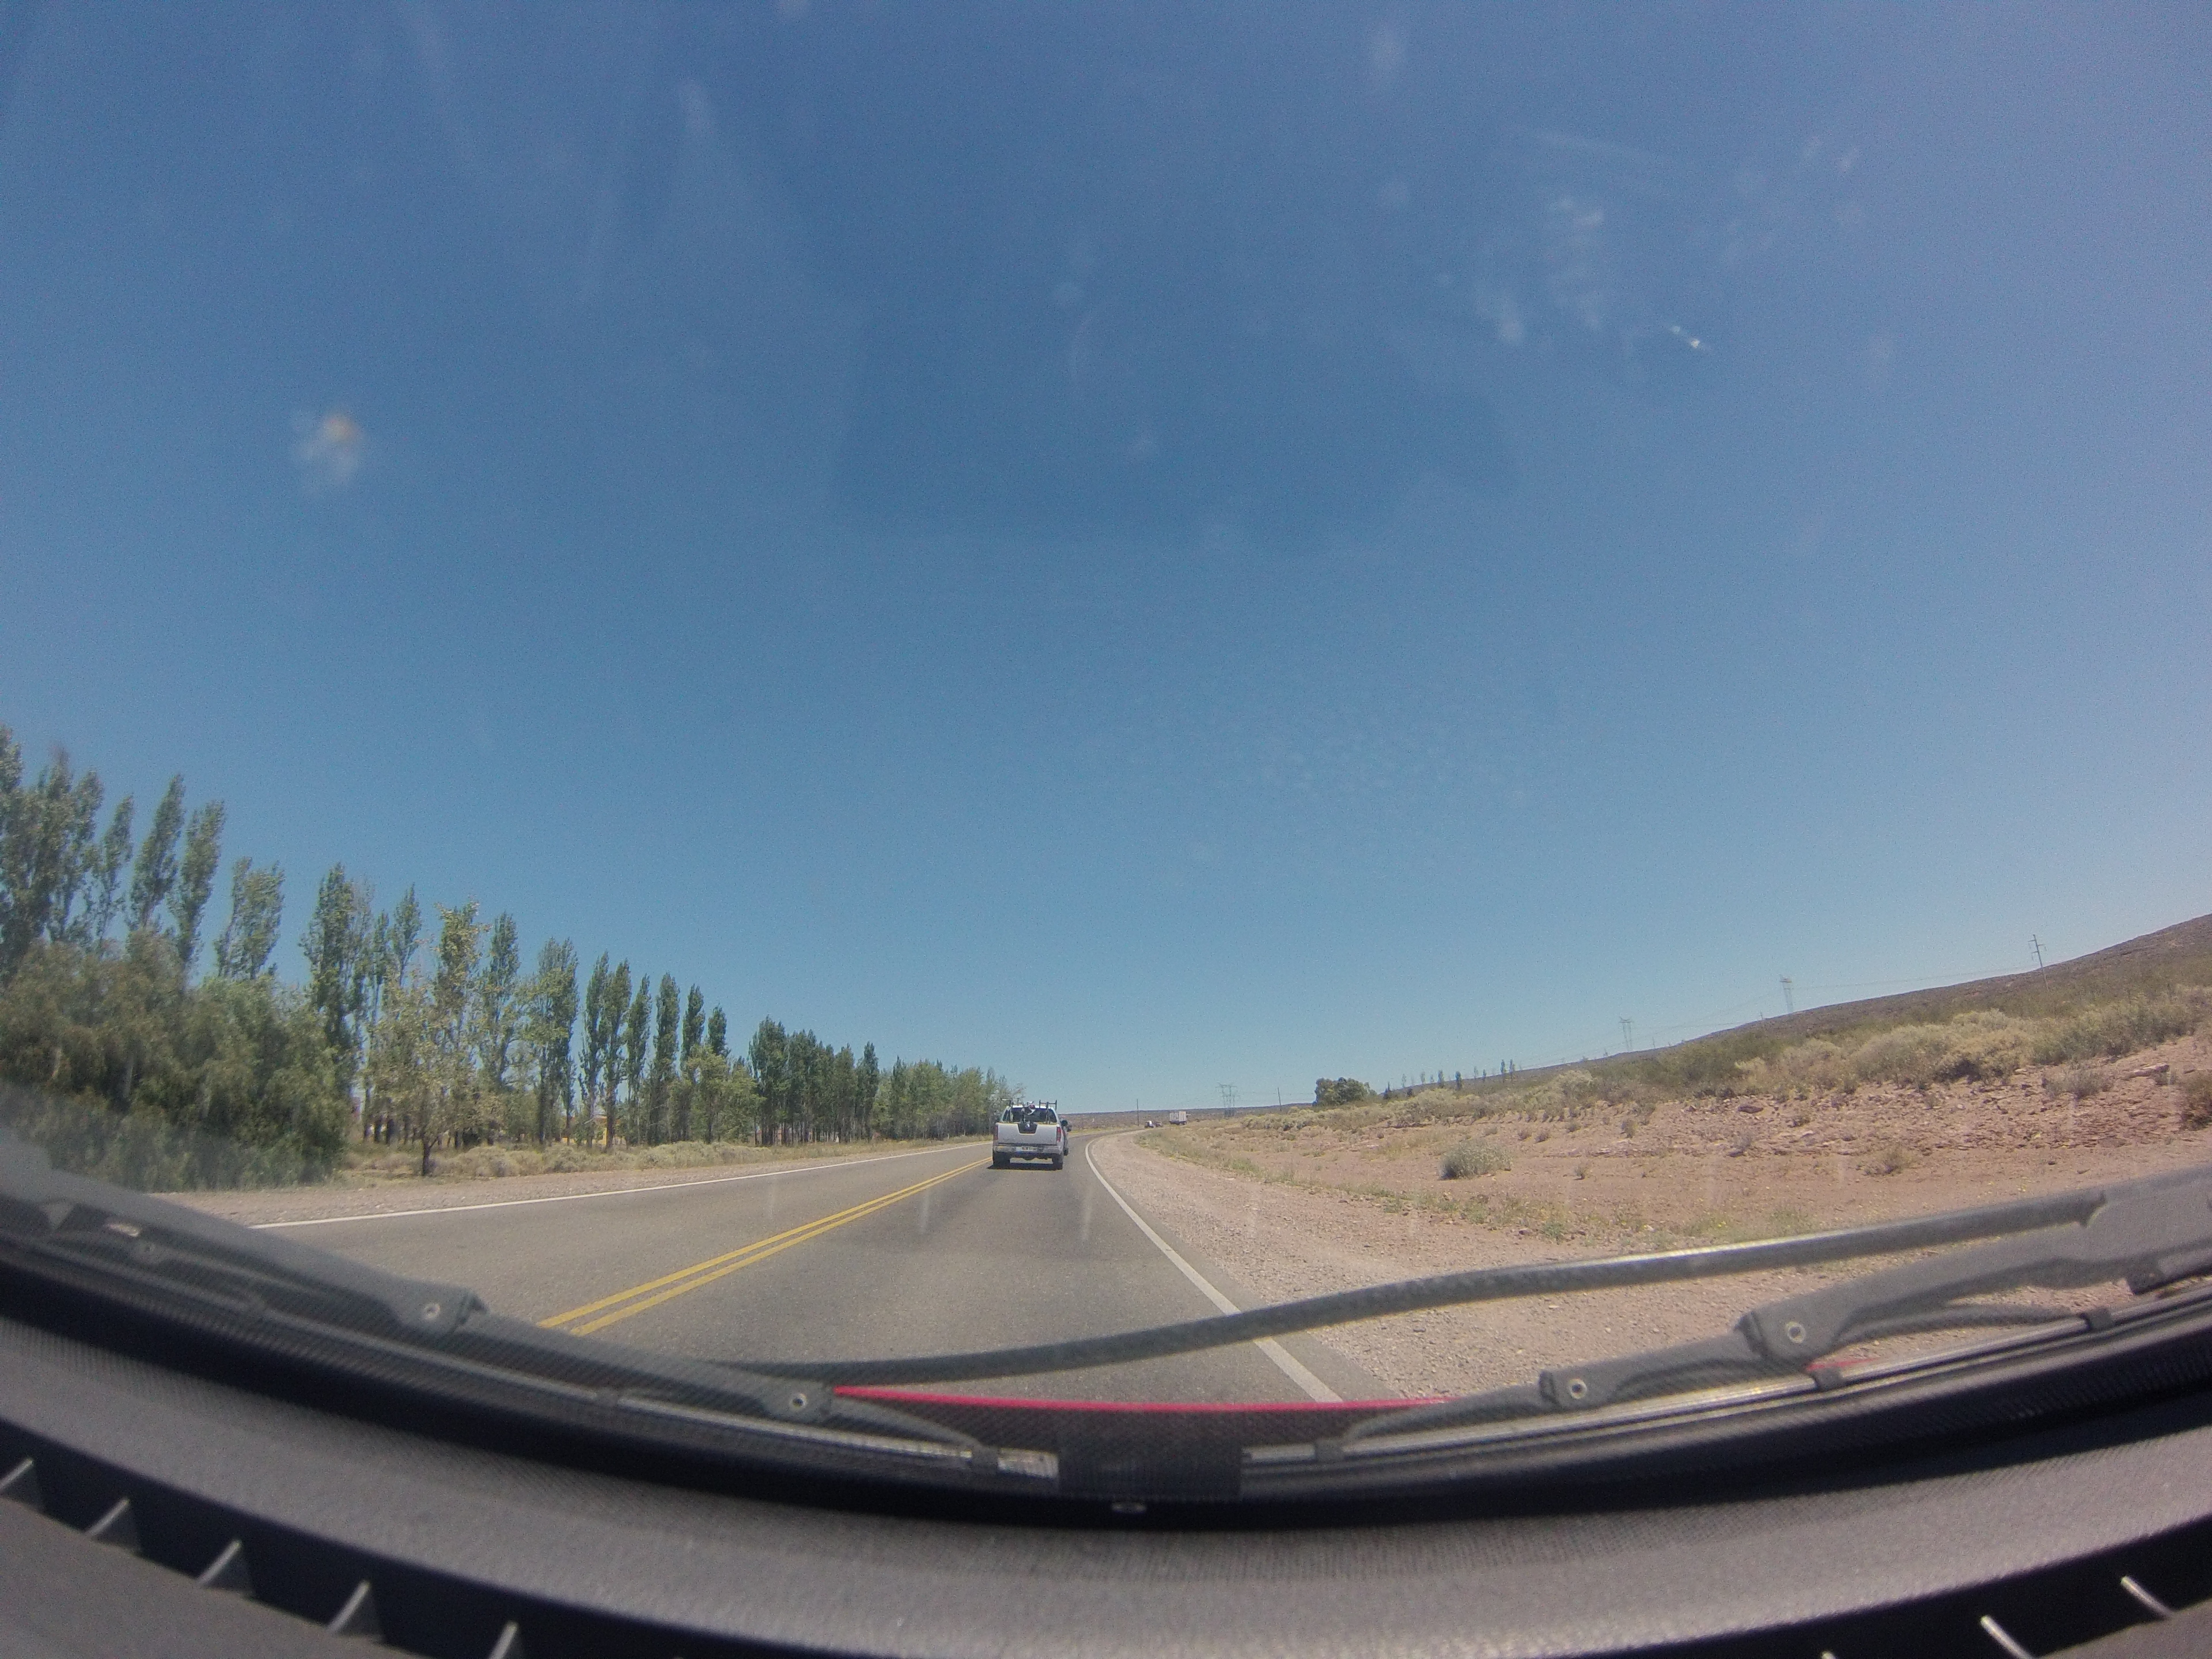 Road view from drivers dash cam photo